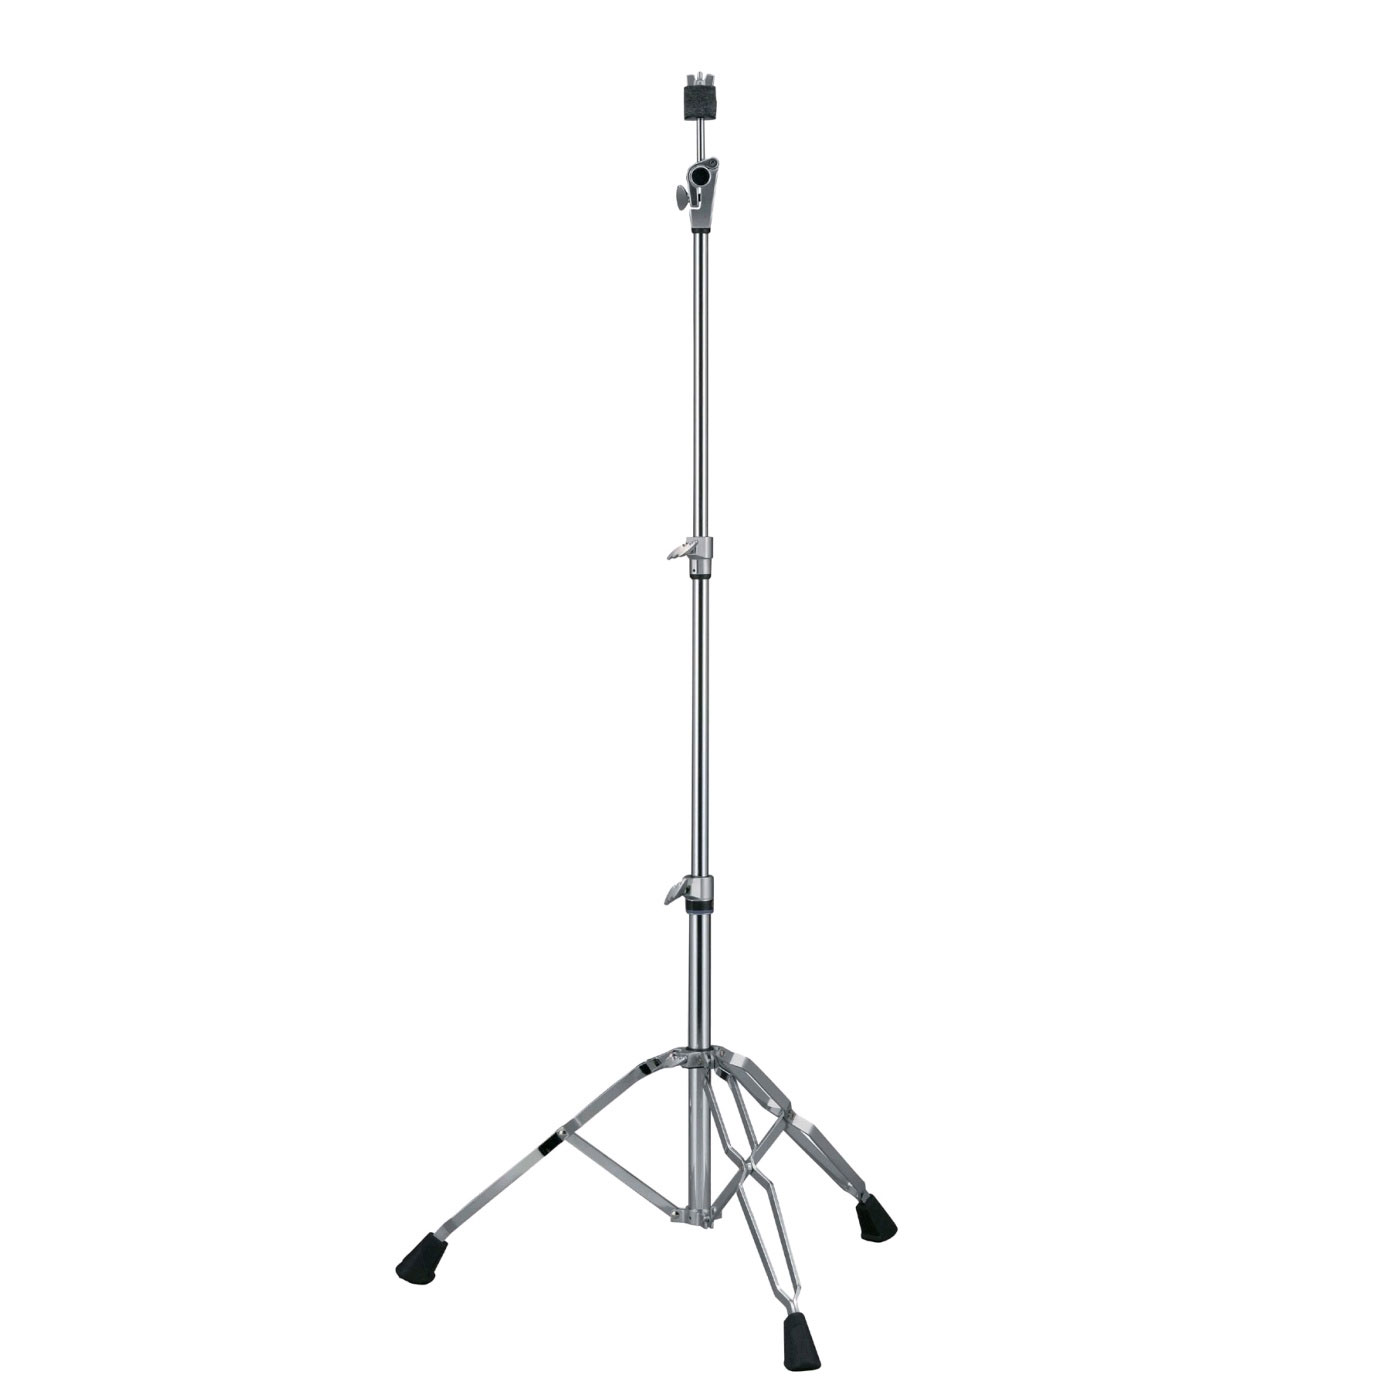 Yamaha CS-850 Double-Braced Straight Cymbal Stand